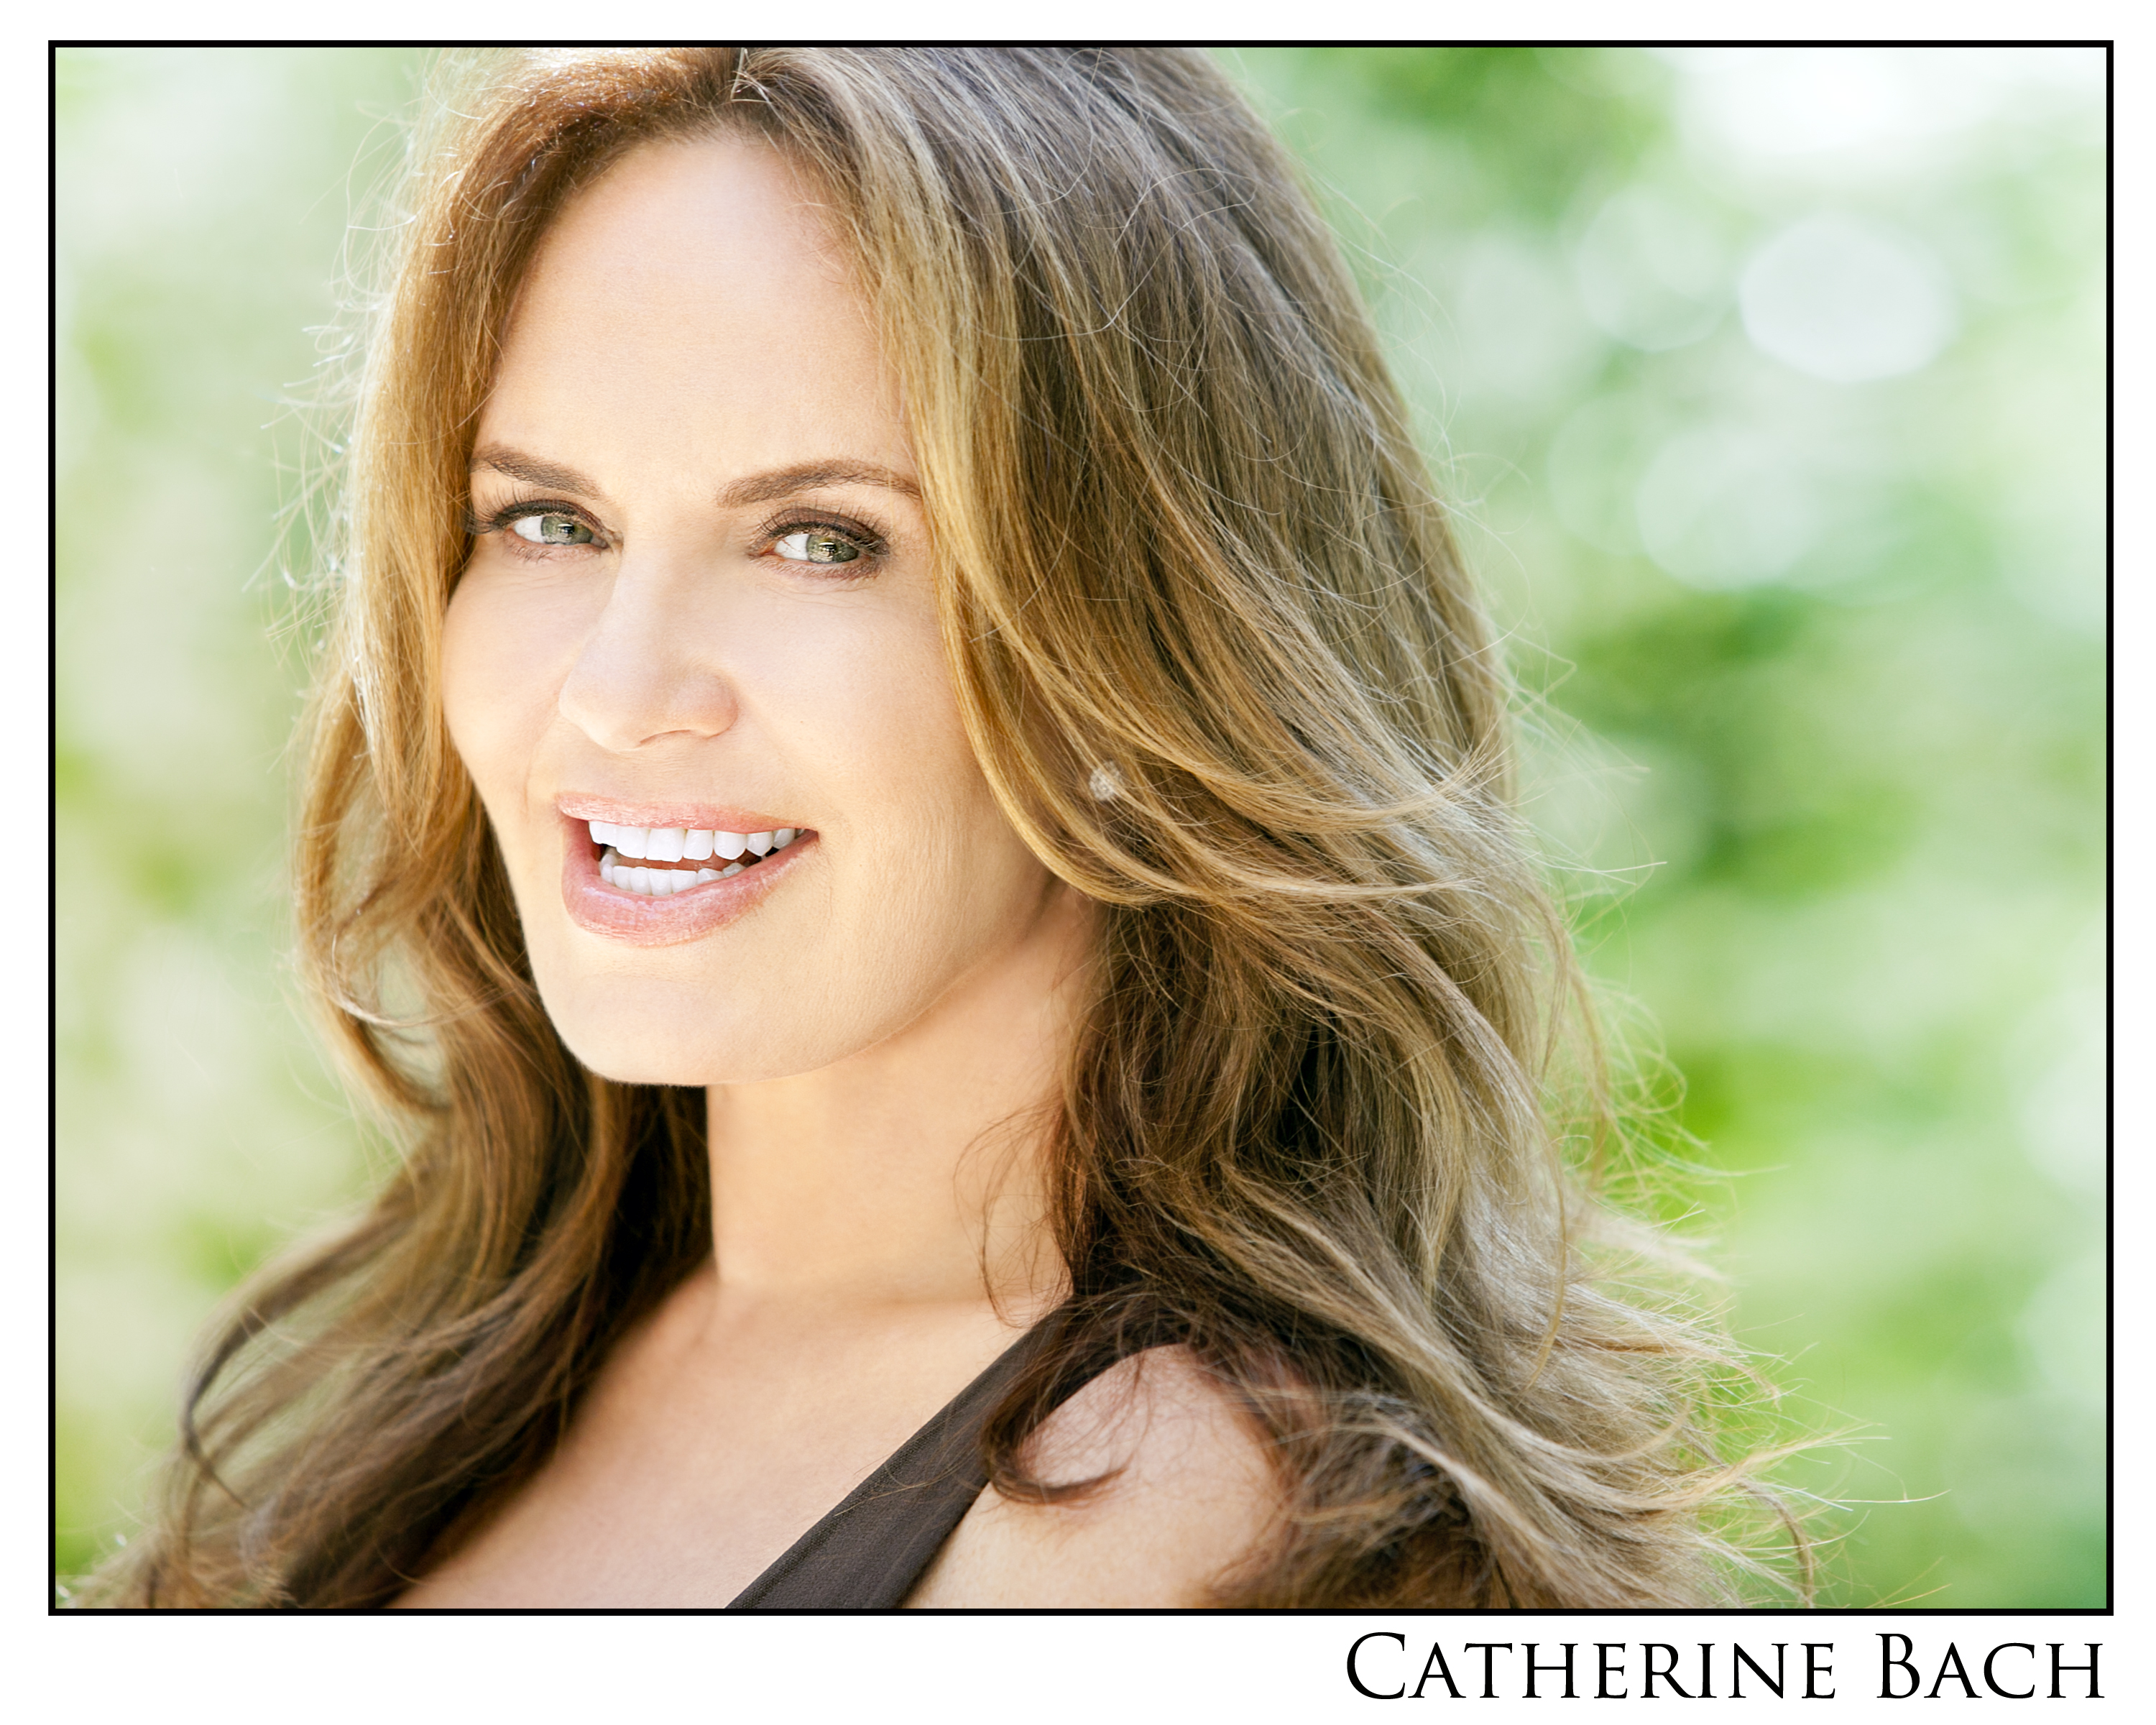 Catherine Bach very hot pic